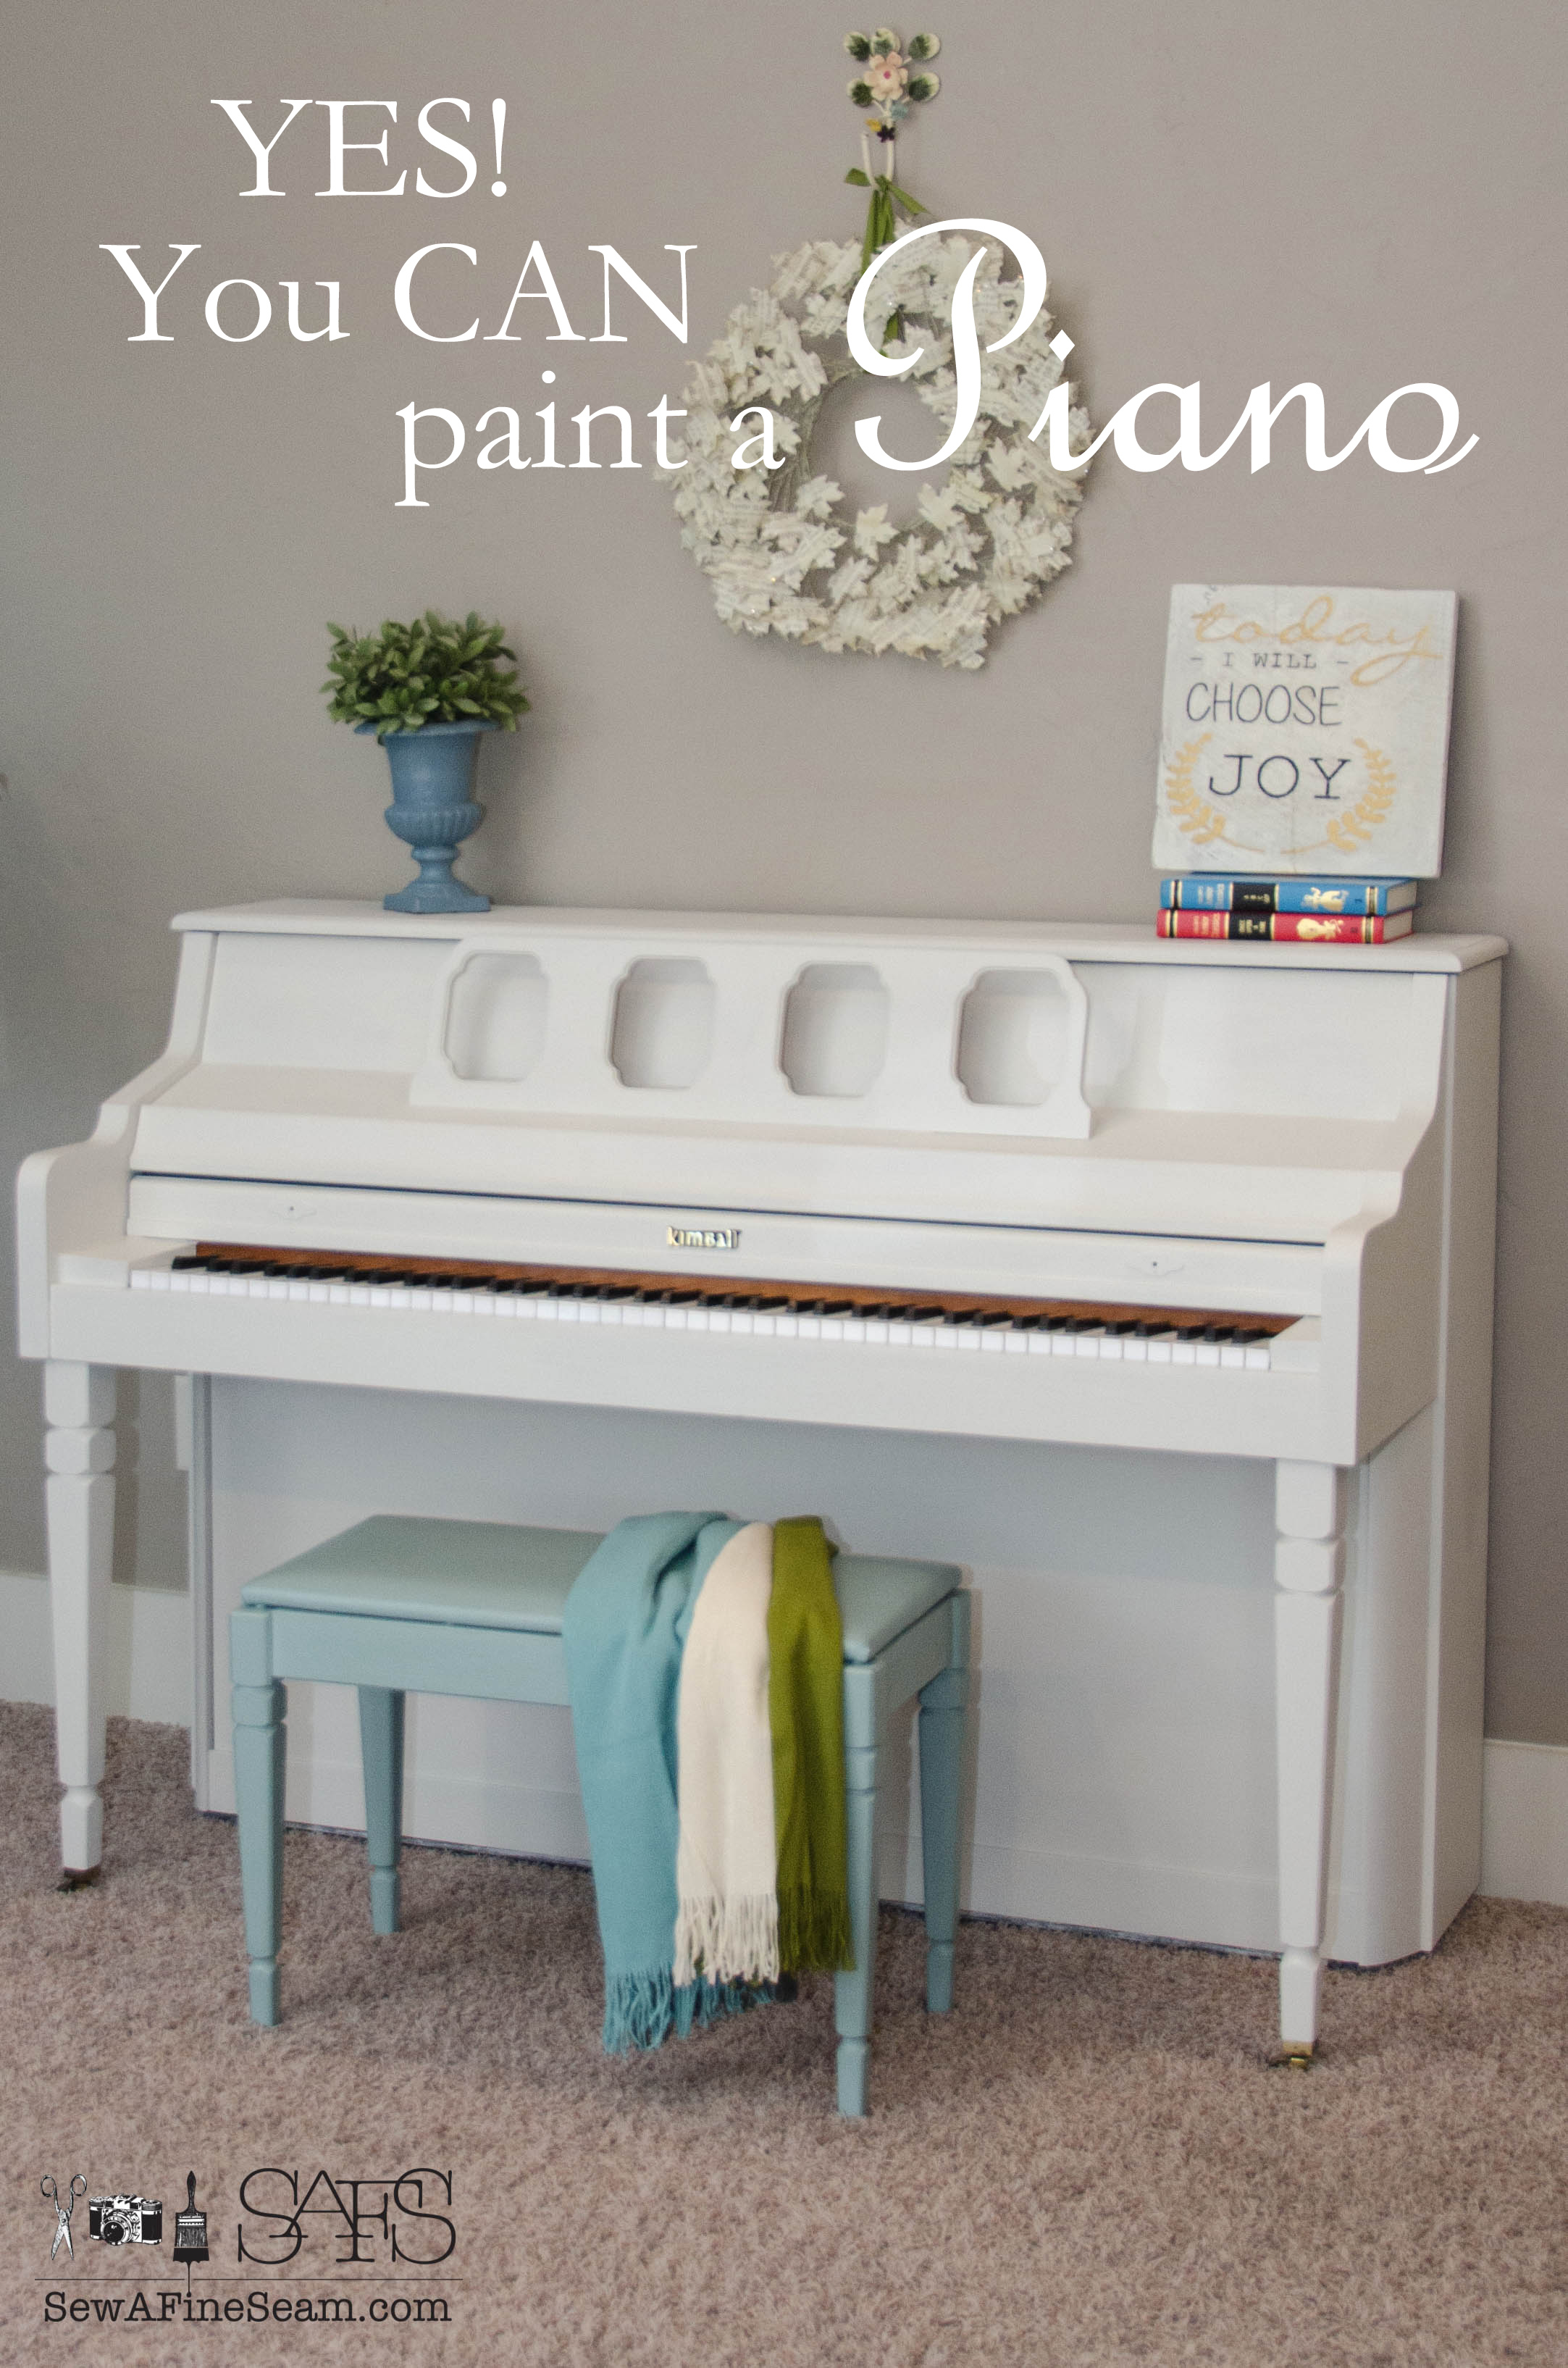 Yes, You CAN Paint a Piano!